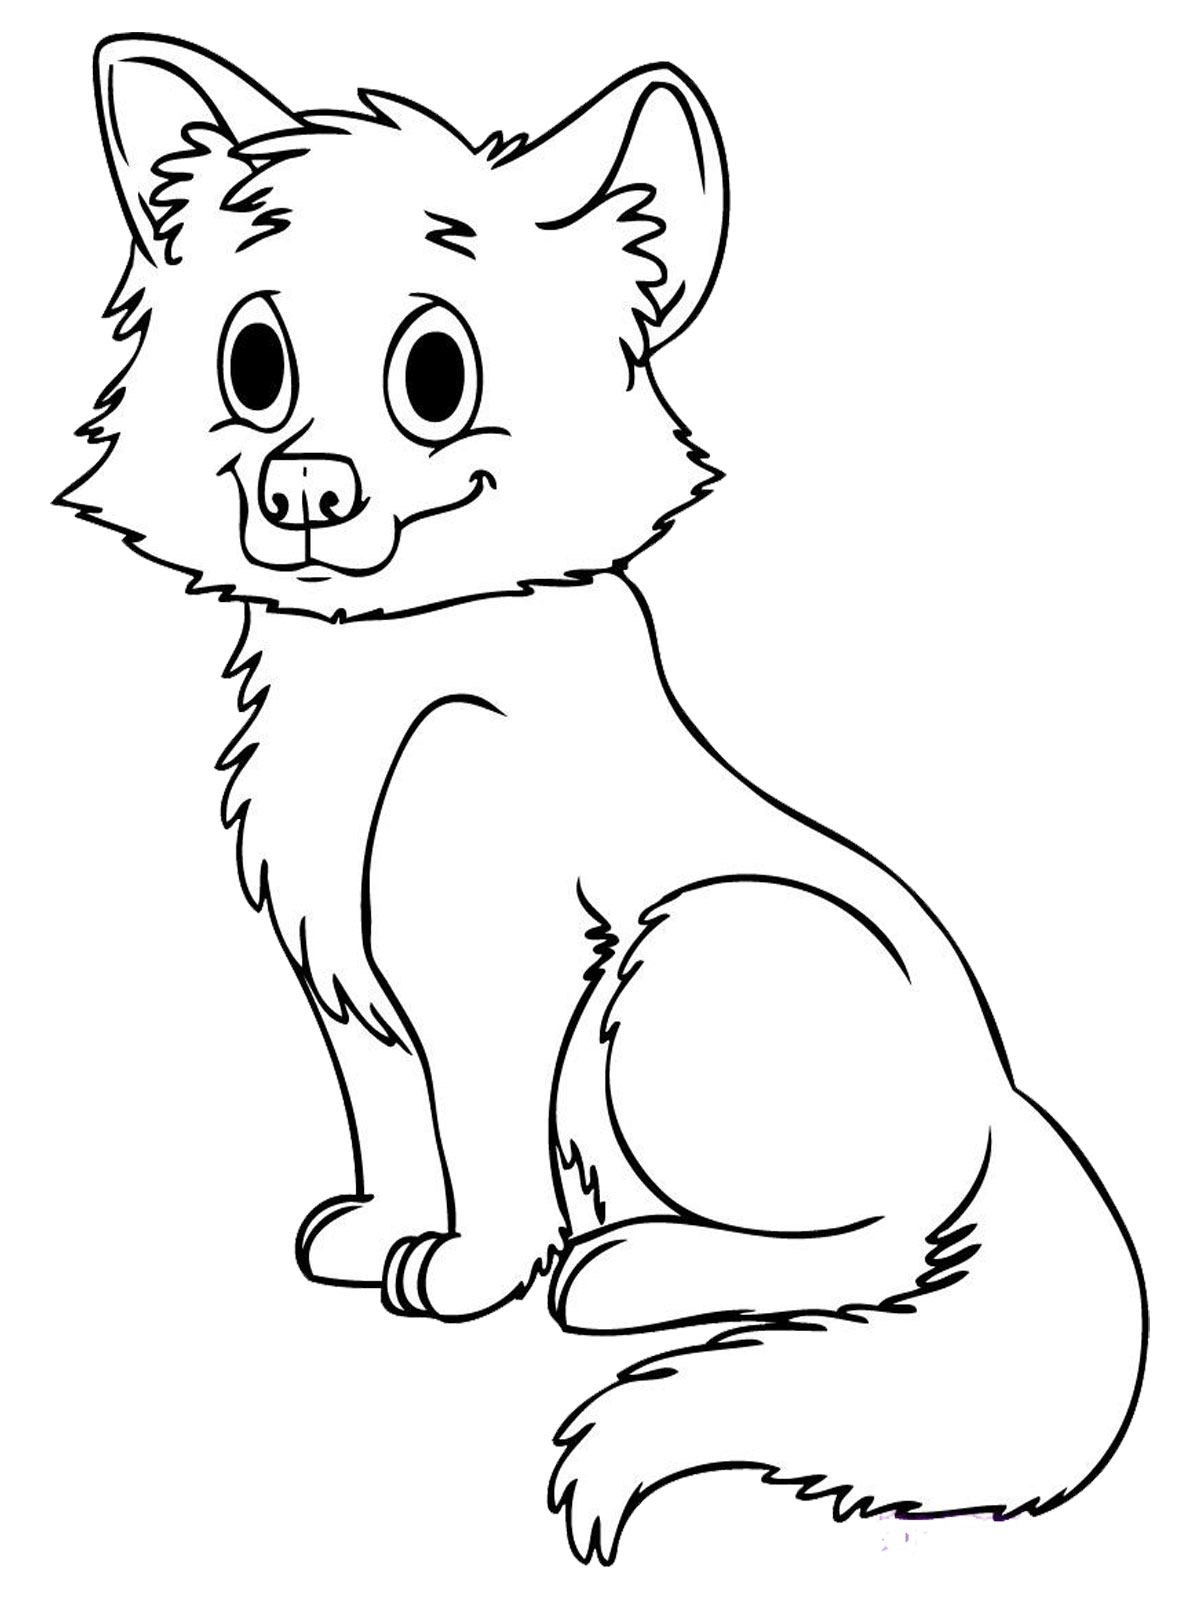 Baby Animal Coloring Pages Realistic Coloring Pages Coloring Pages To Print Animals